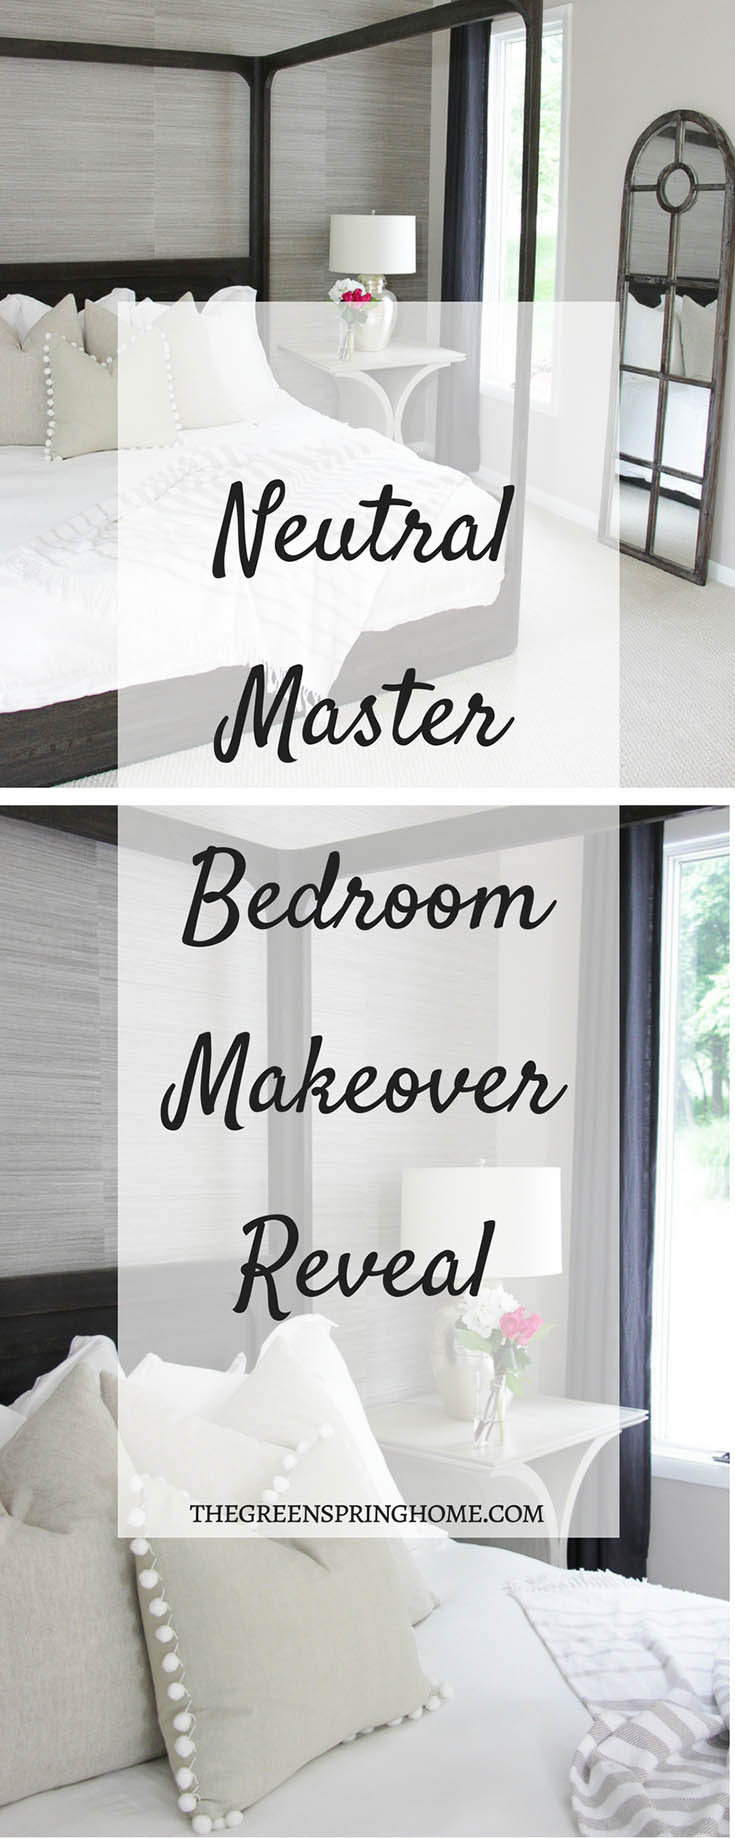 Neutral Master Bedroom Remodel Before and After